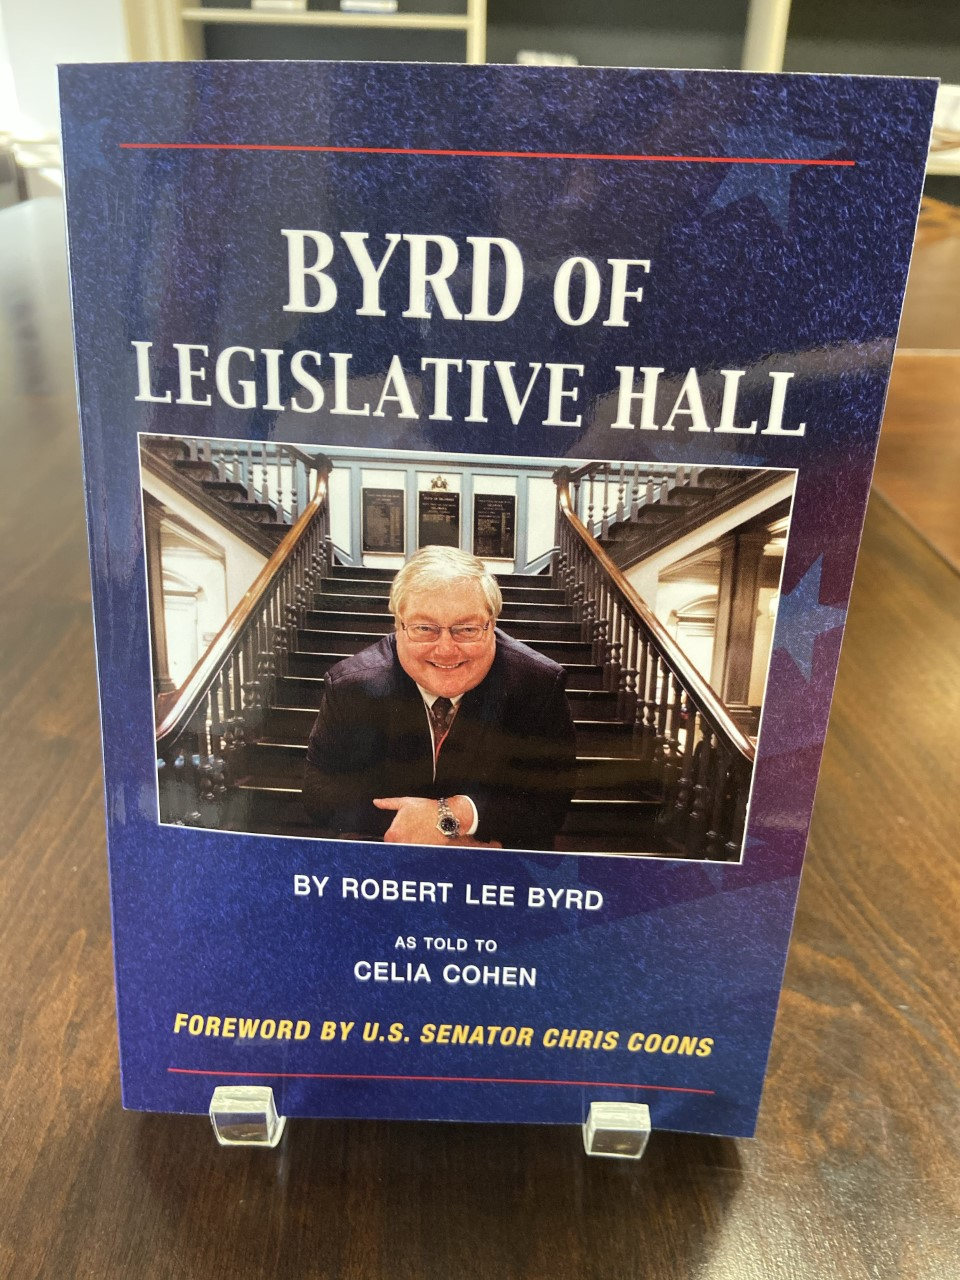 Byrd of Legislative Hall, Robert Lee Byrd, 2019, 263 pp. Prices reflect the cost of the book PLUS S&H fee of $3.00.